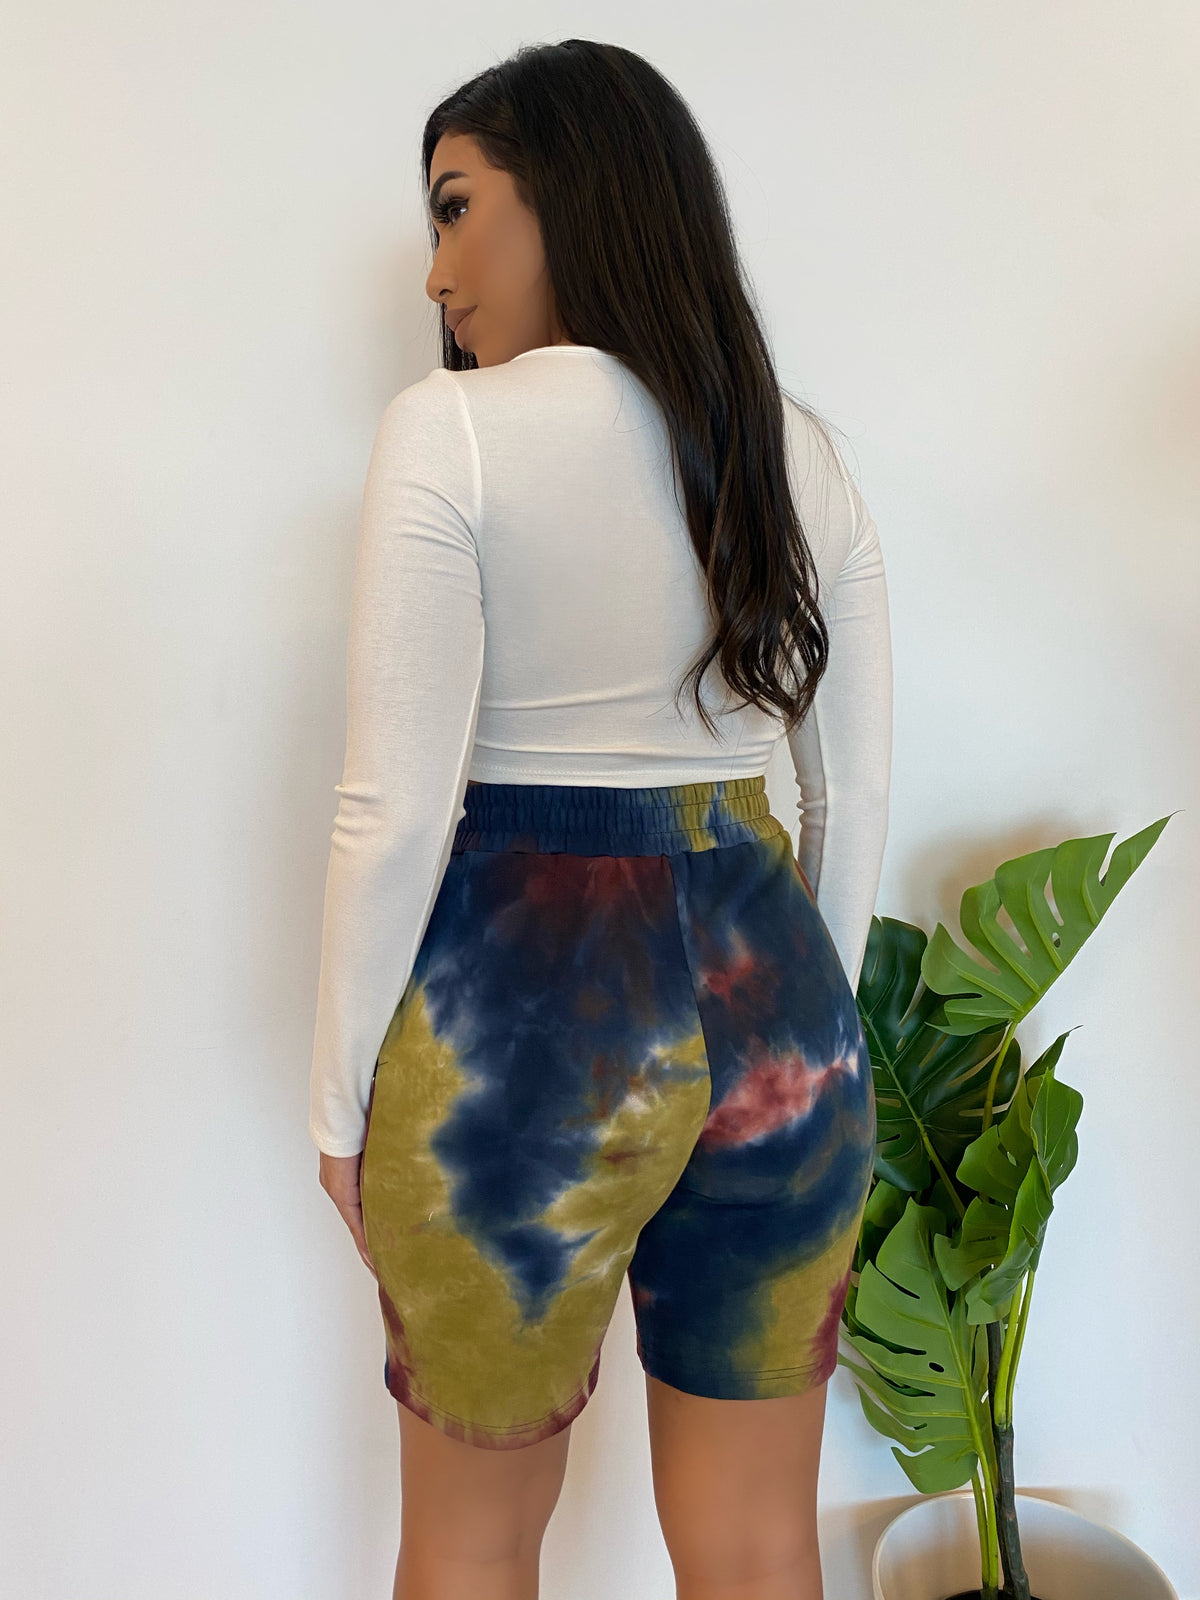 grey tie dye shorts, above the knee length, high waist, 2 front pockets